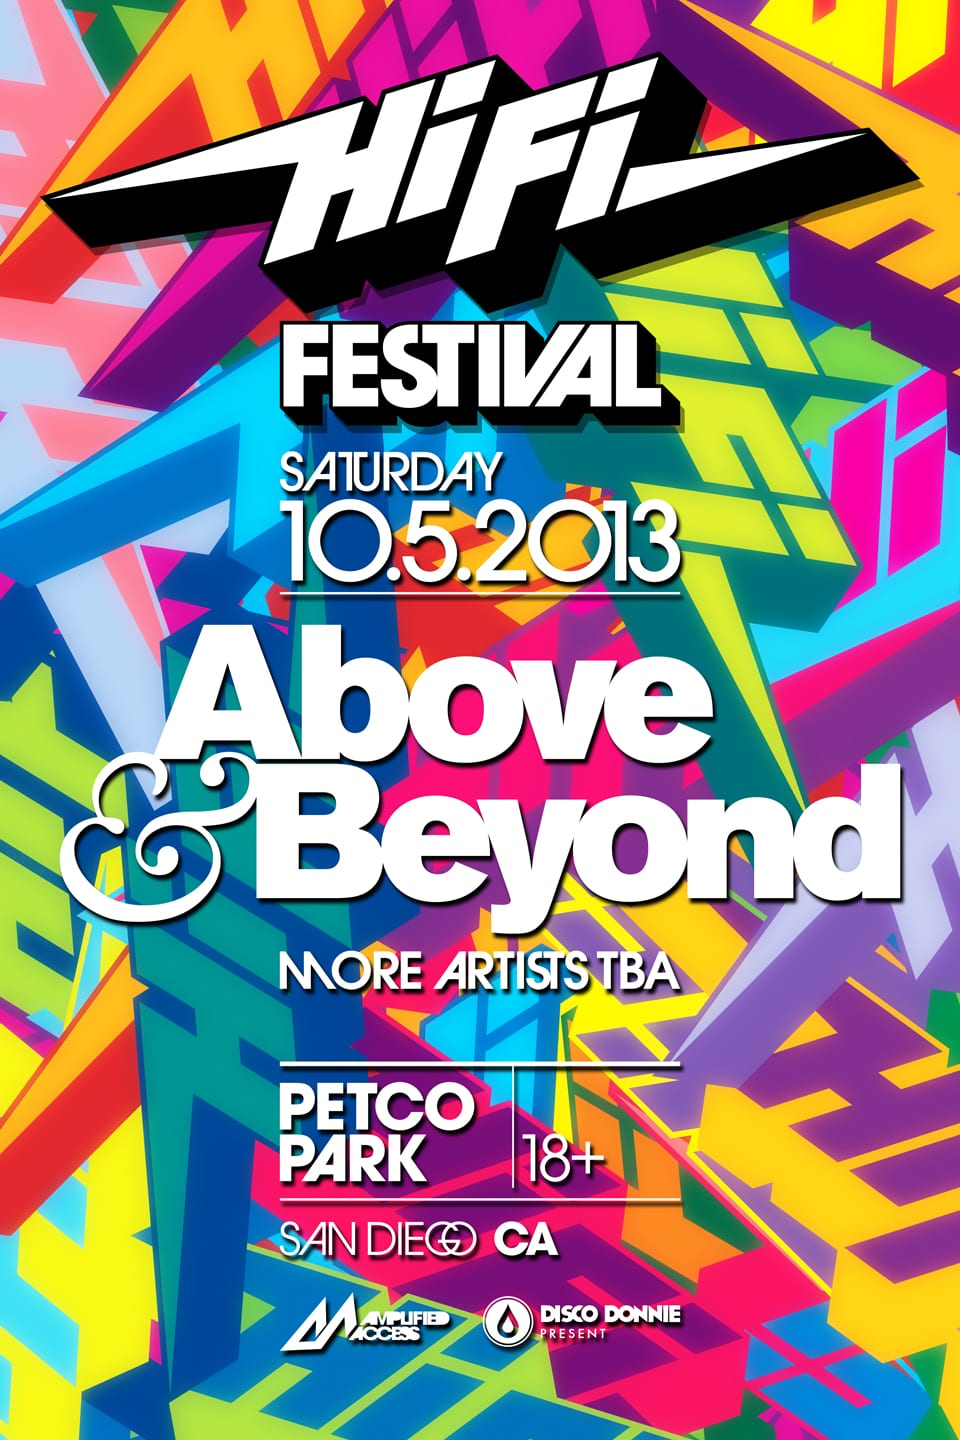 Win tickets to HI-FI festival featuring Above & Beyond!